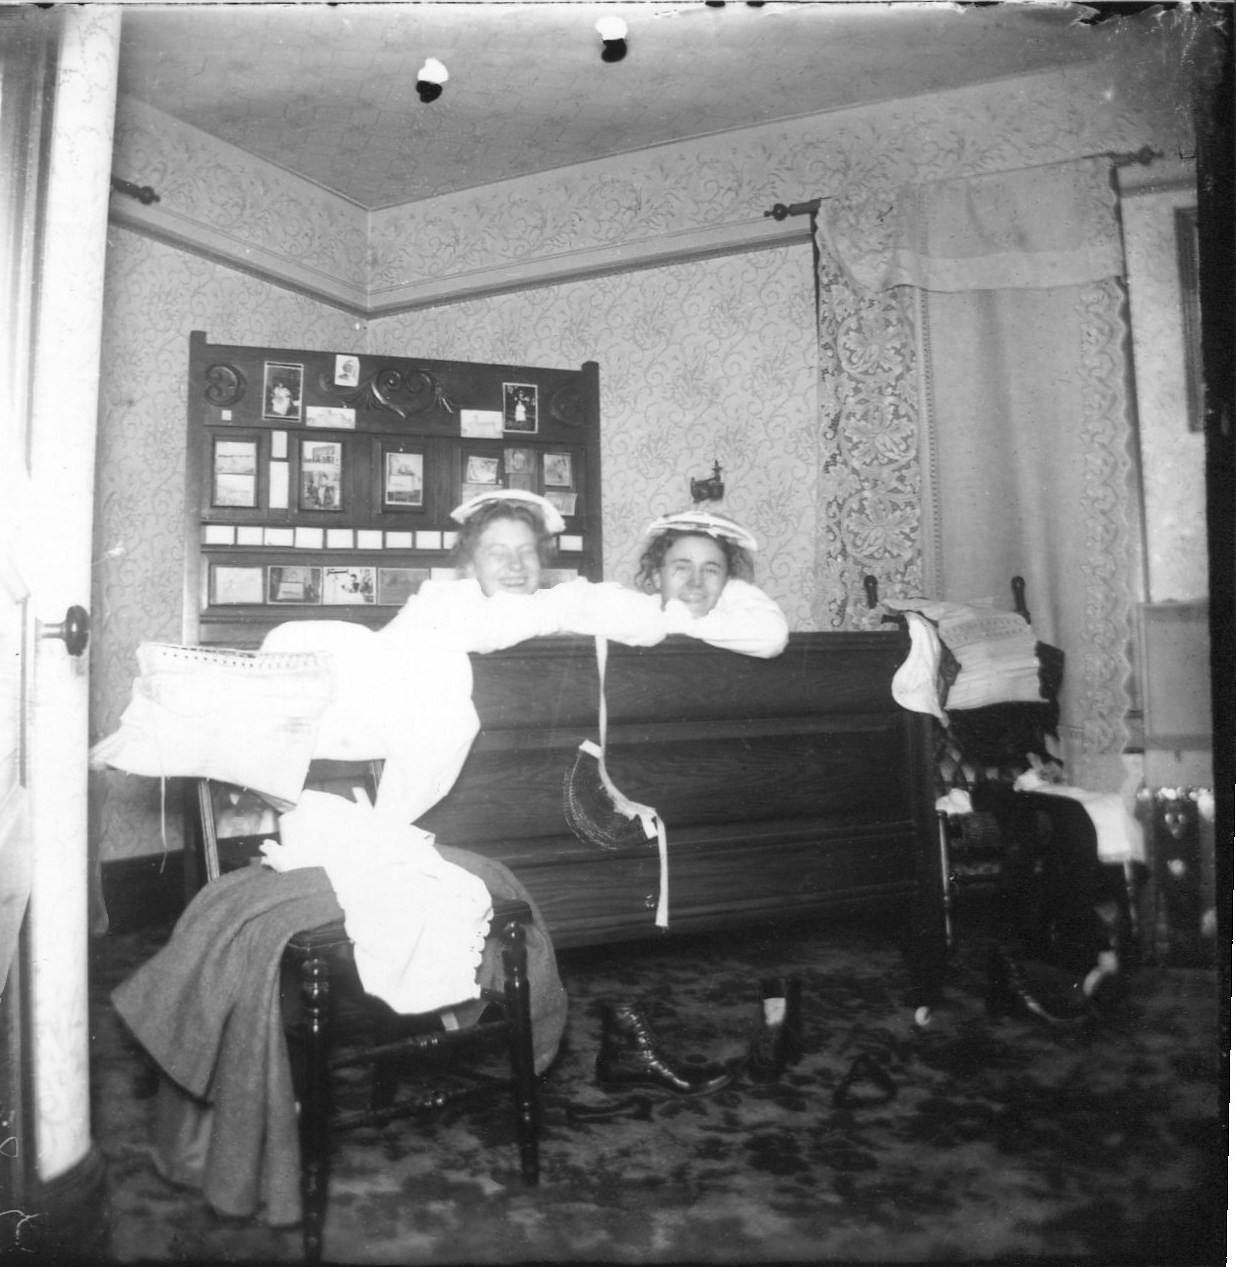 photo of Two Unidentified Women on a Bed